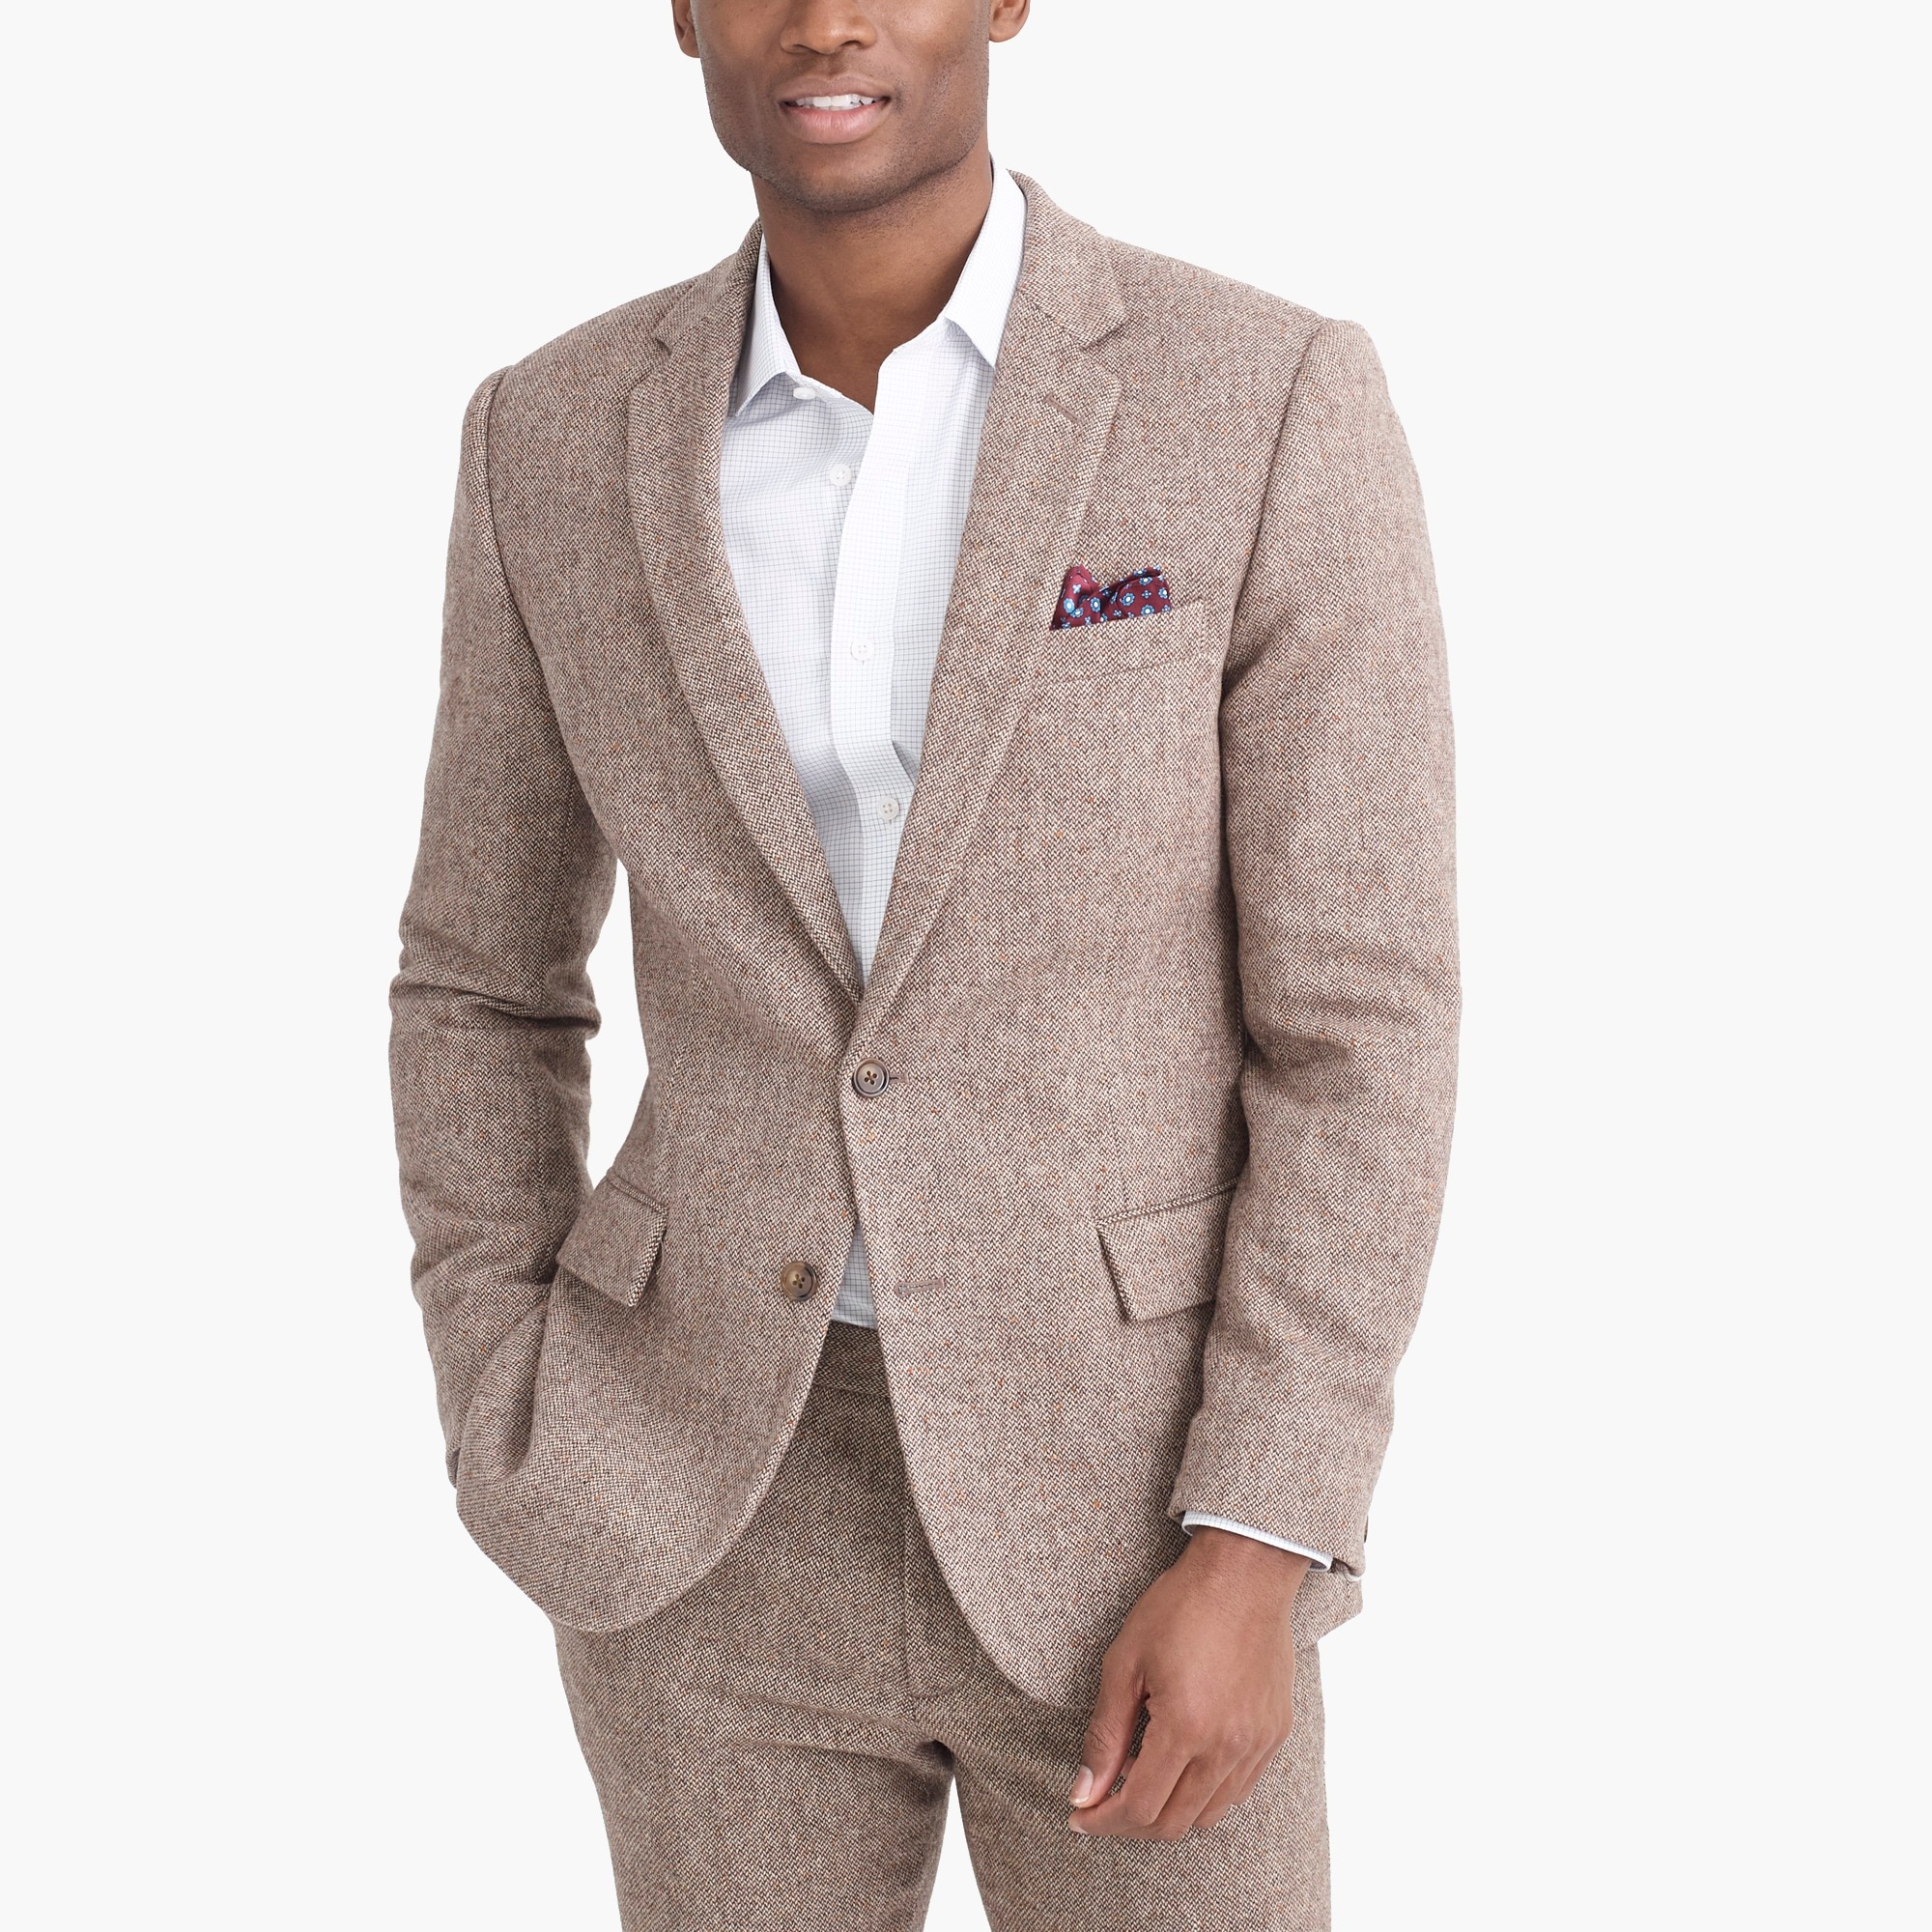 Image 3 for Thompson suit jacket in bird's-eye wool